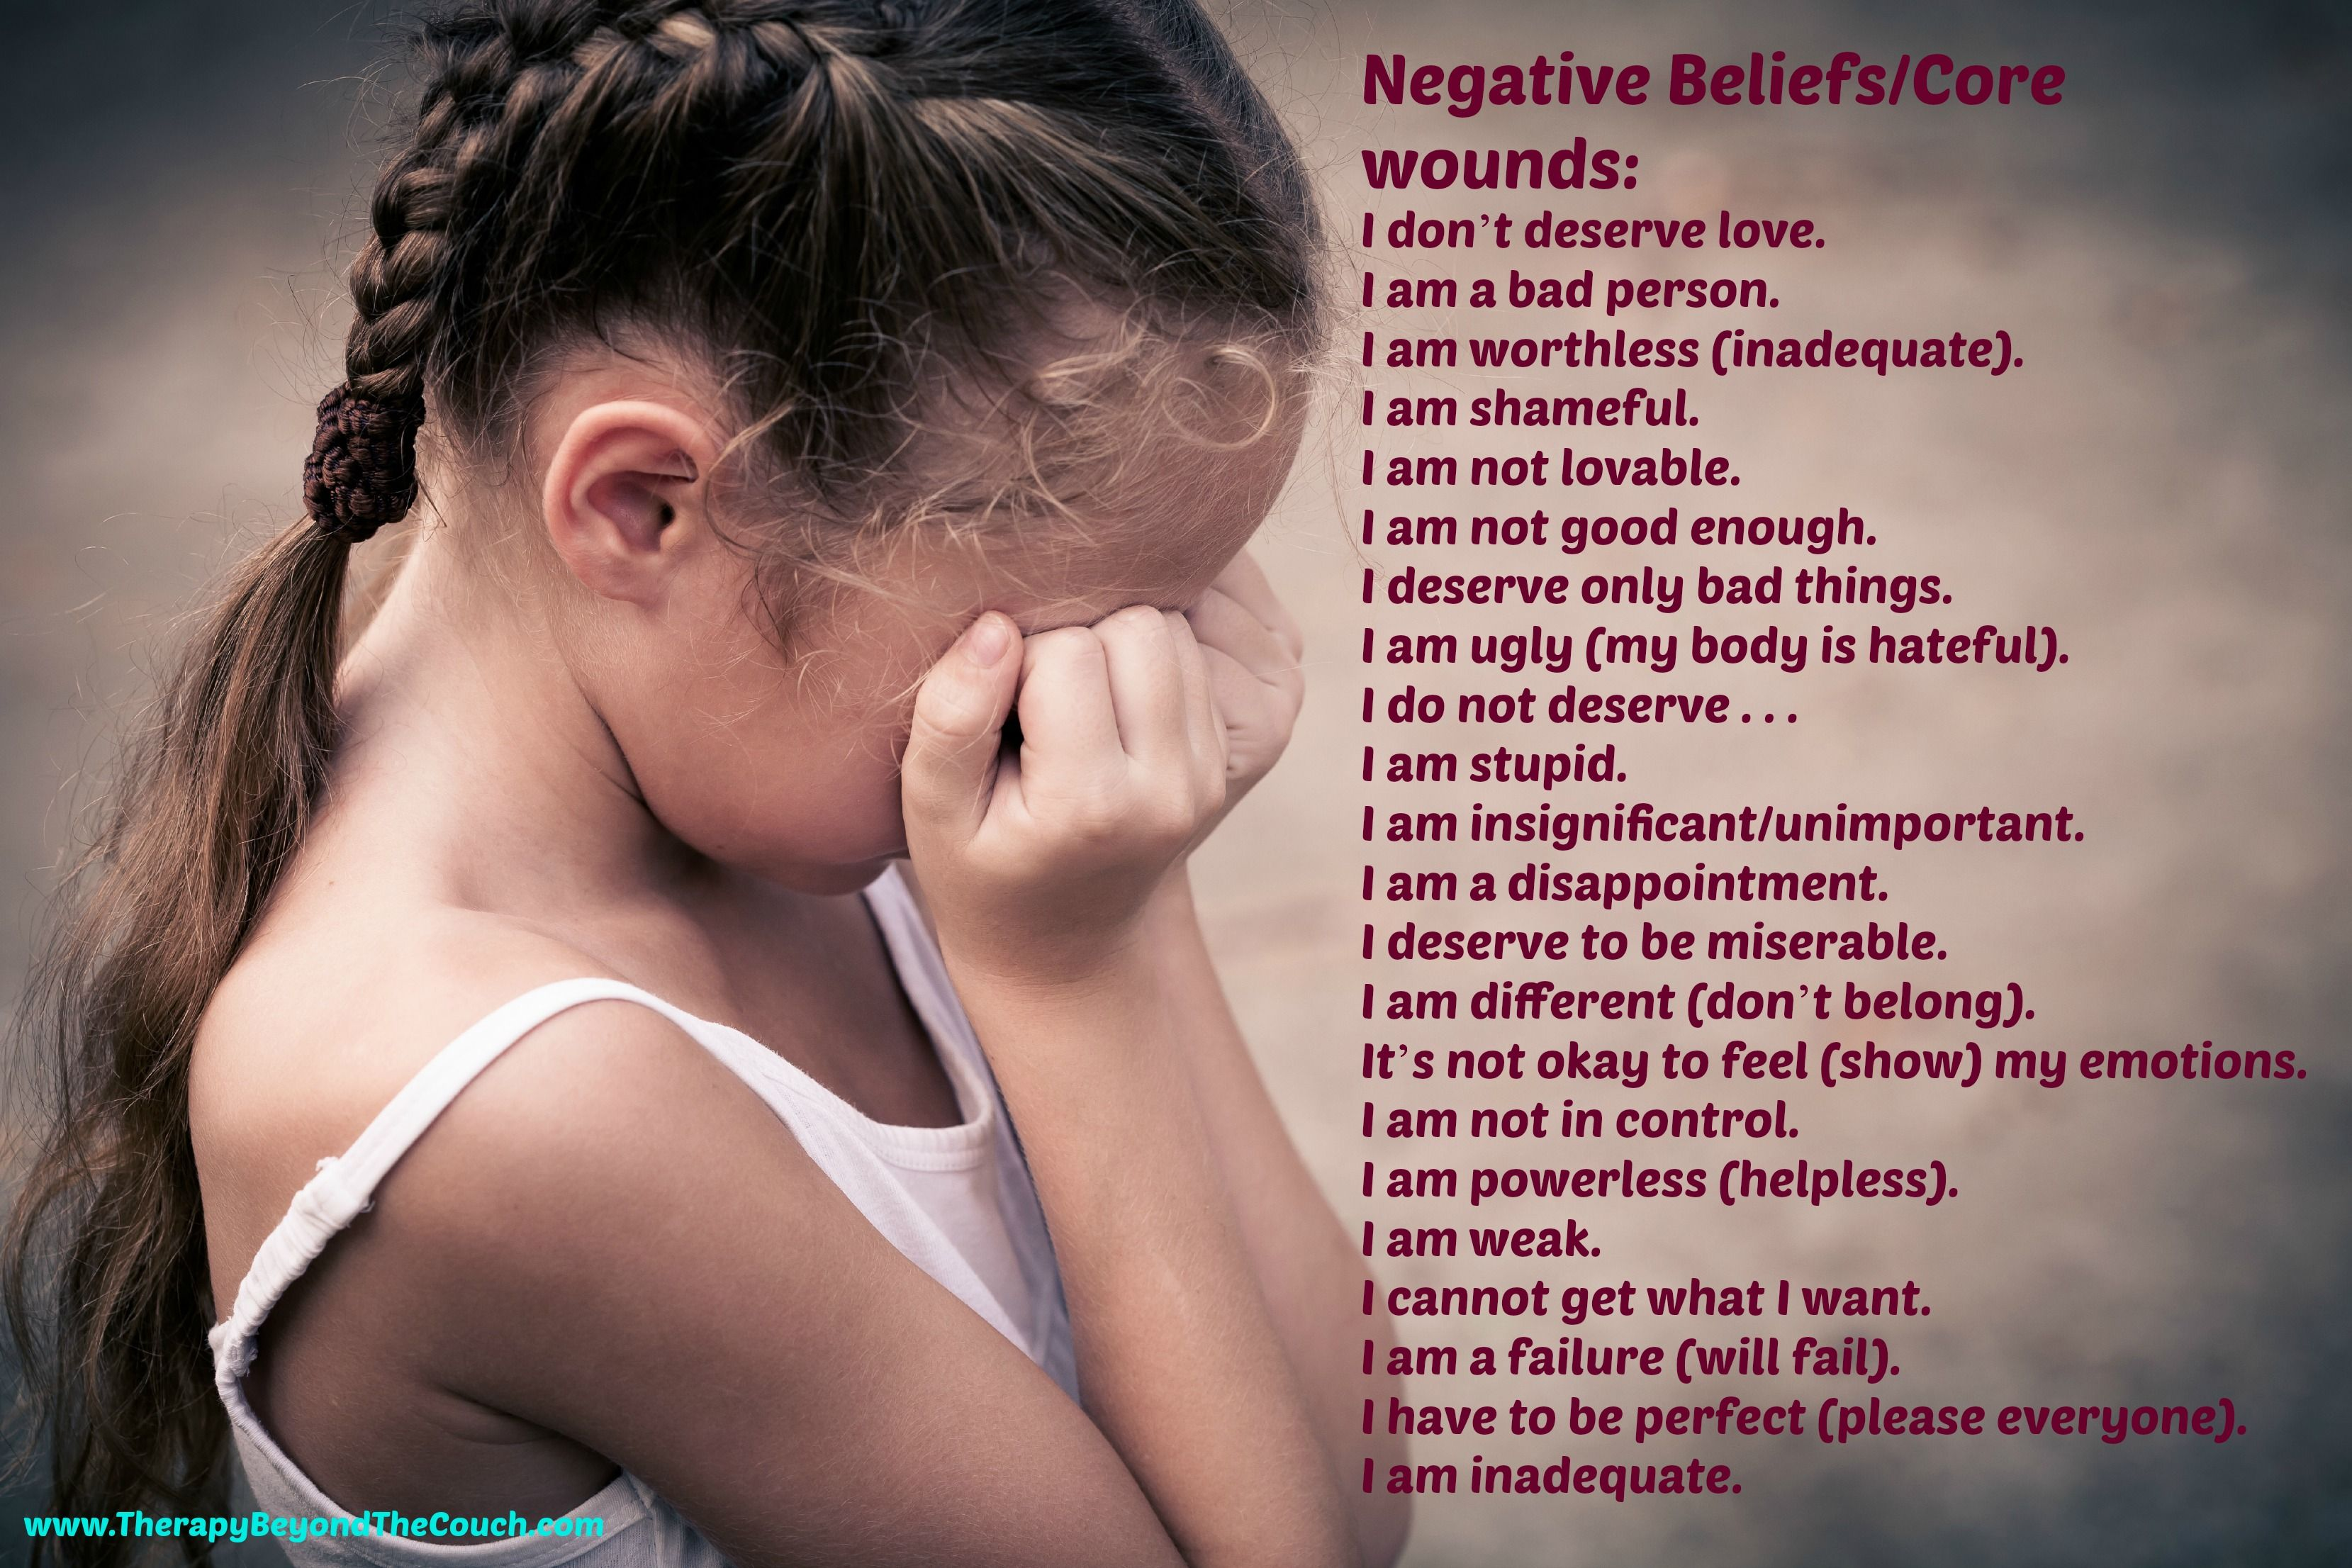 A List Of Our Negative Beliefs Core Wounds From Therapybeyondthecouch